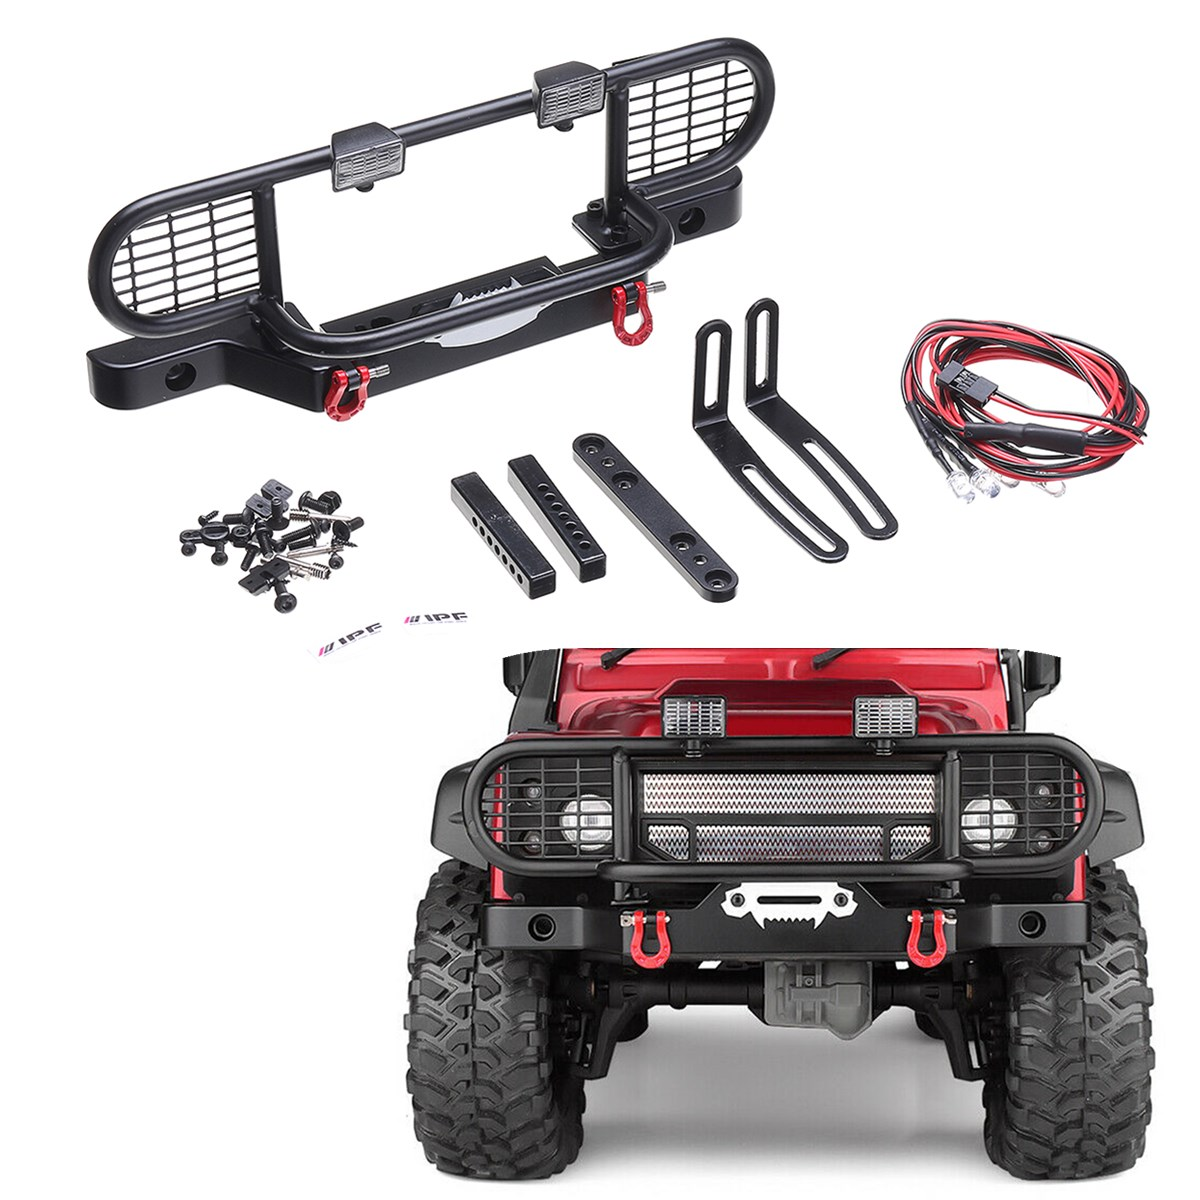 1 Set Metal Front Bumper With Light for 1/10 Scale RC Crawler Car for Traxxas TRX4 TRX 4 Remote Control Car Accessories